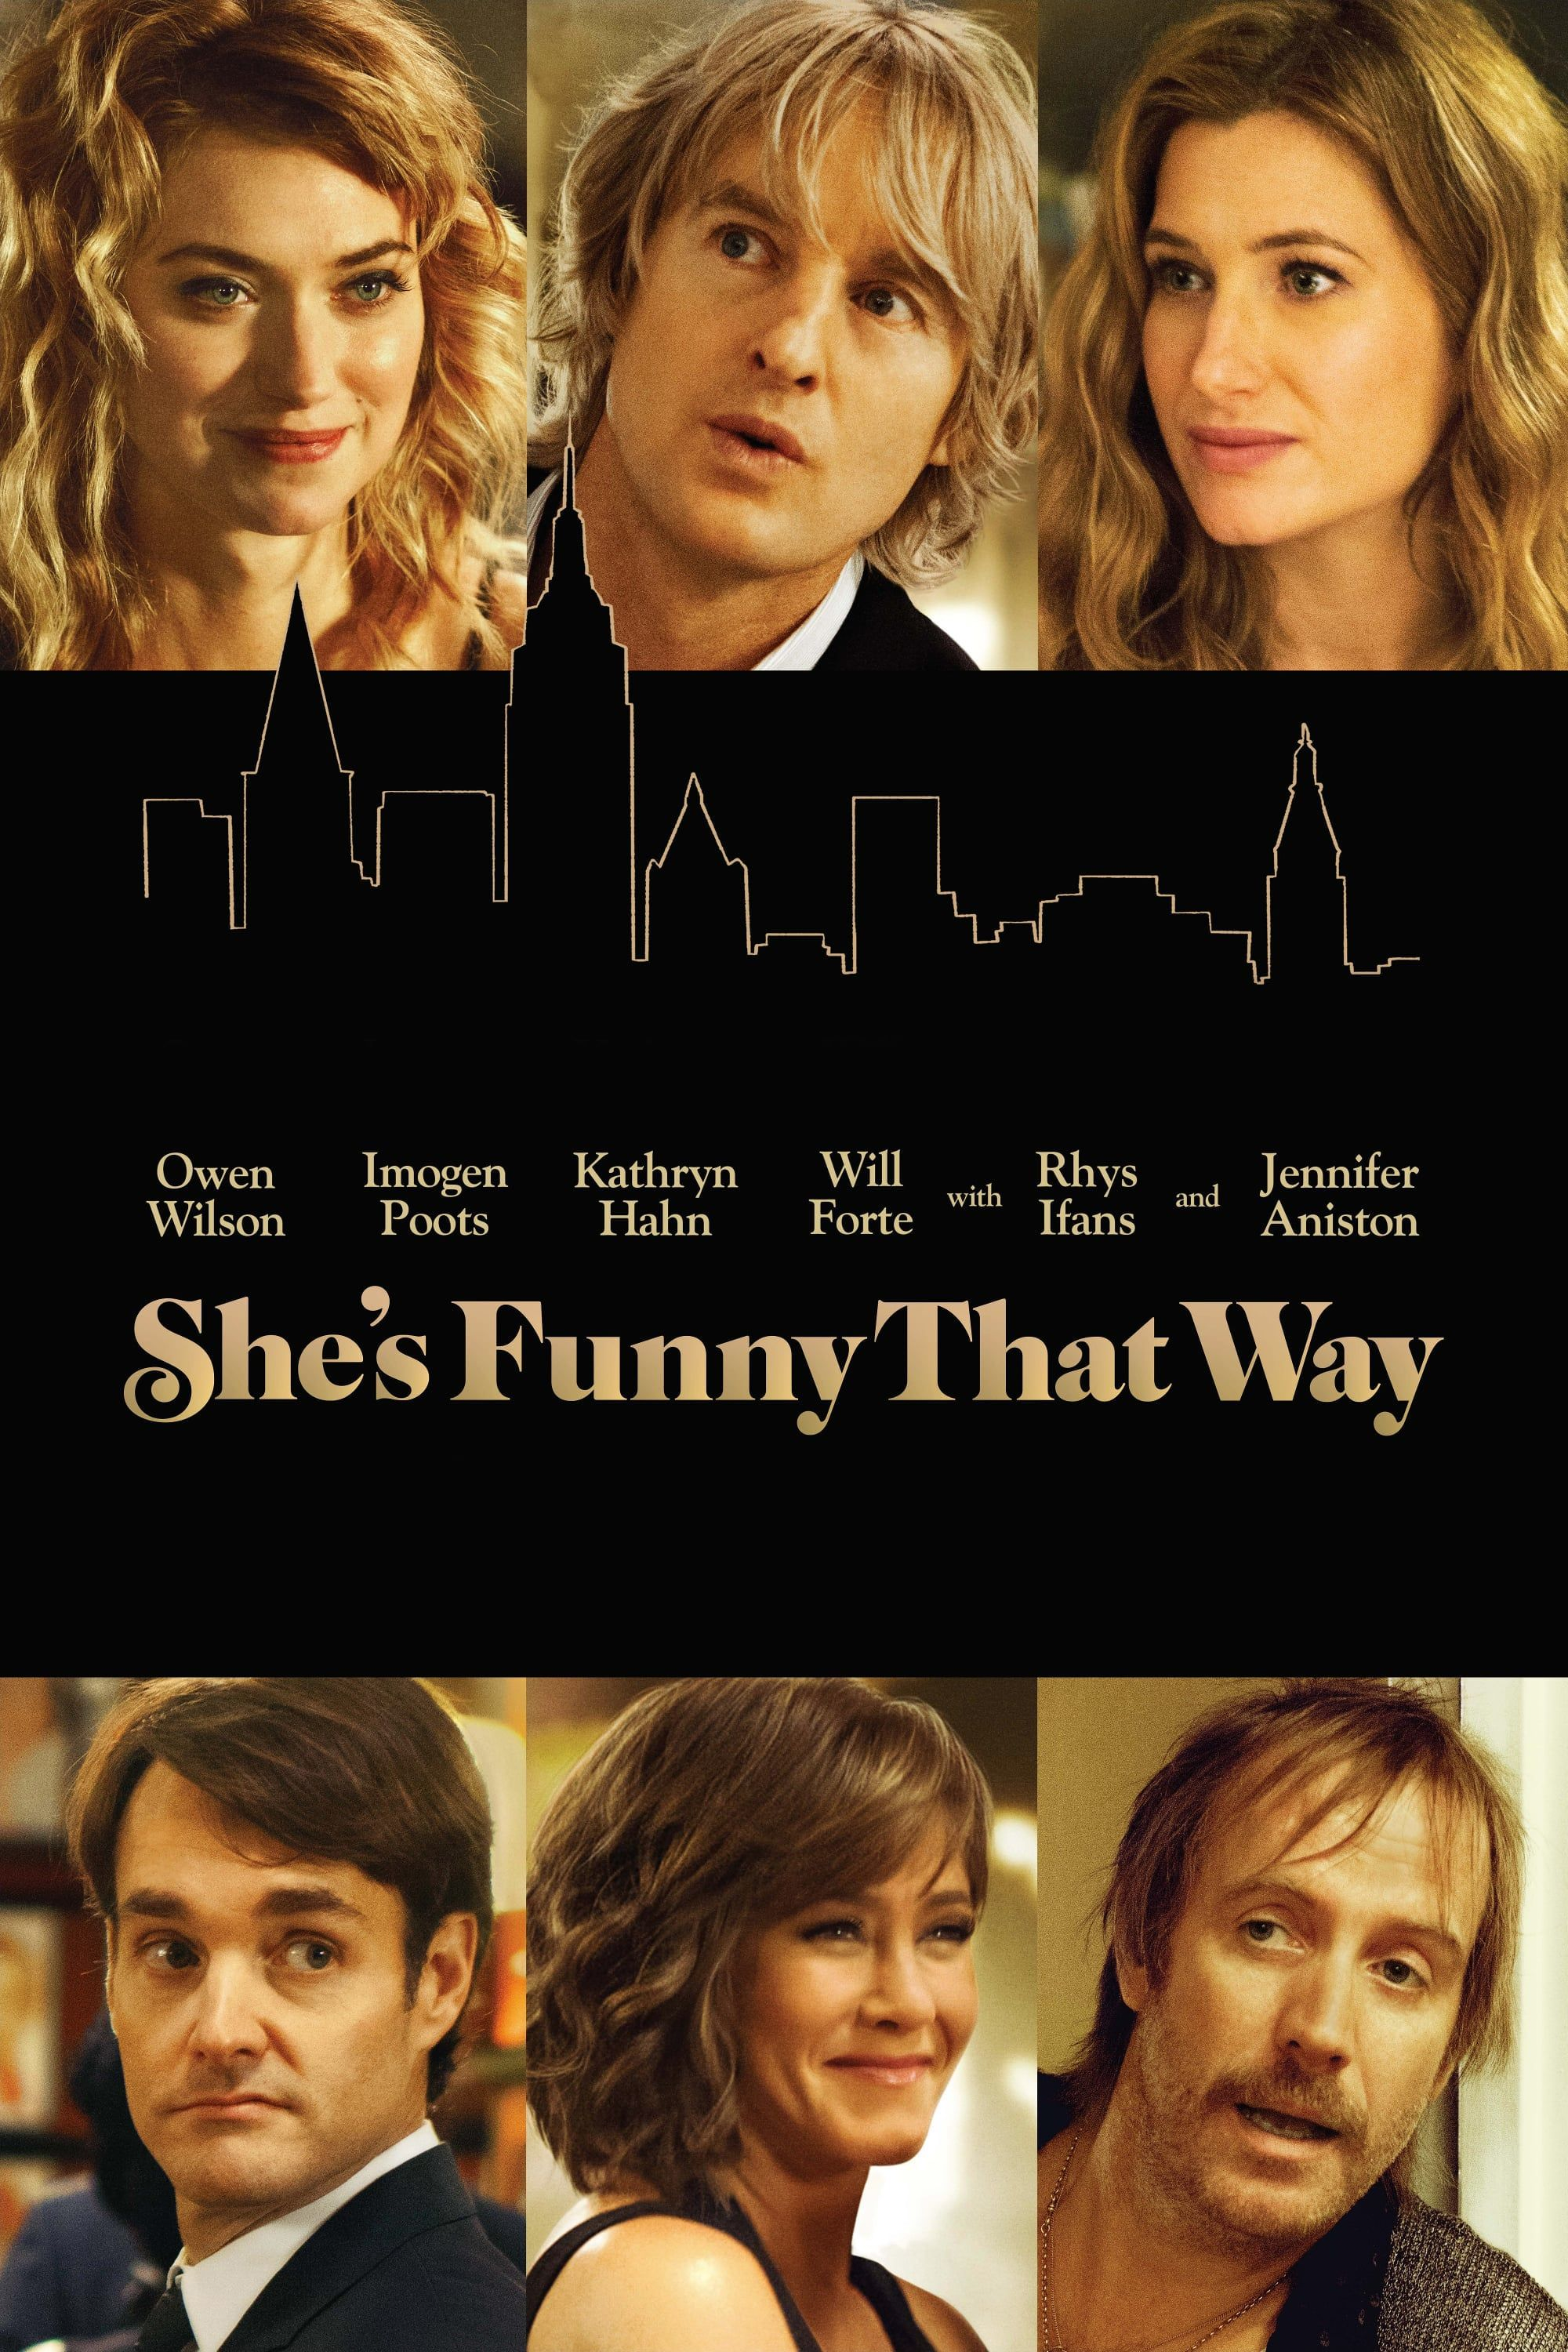 Ver She S Funny That Way Pelicula Completa En Espanol Latino 2014 S Movies Online Free Movies Online Streaming Movies Online